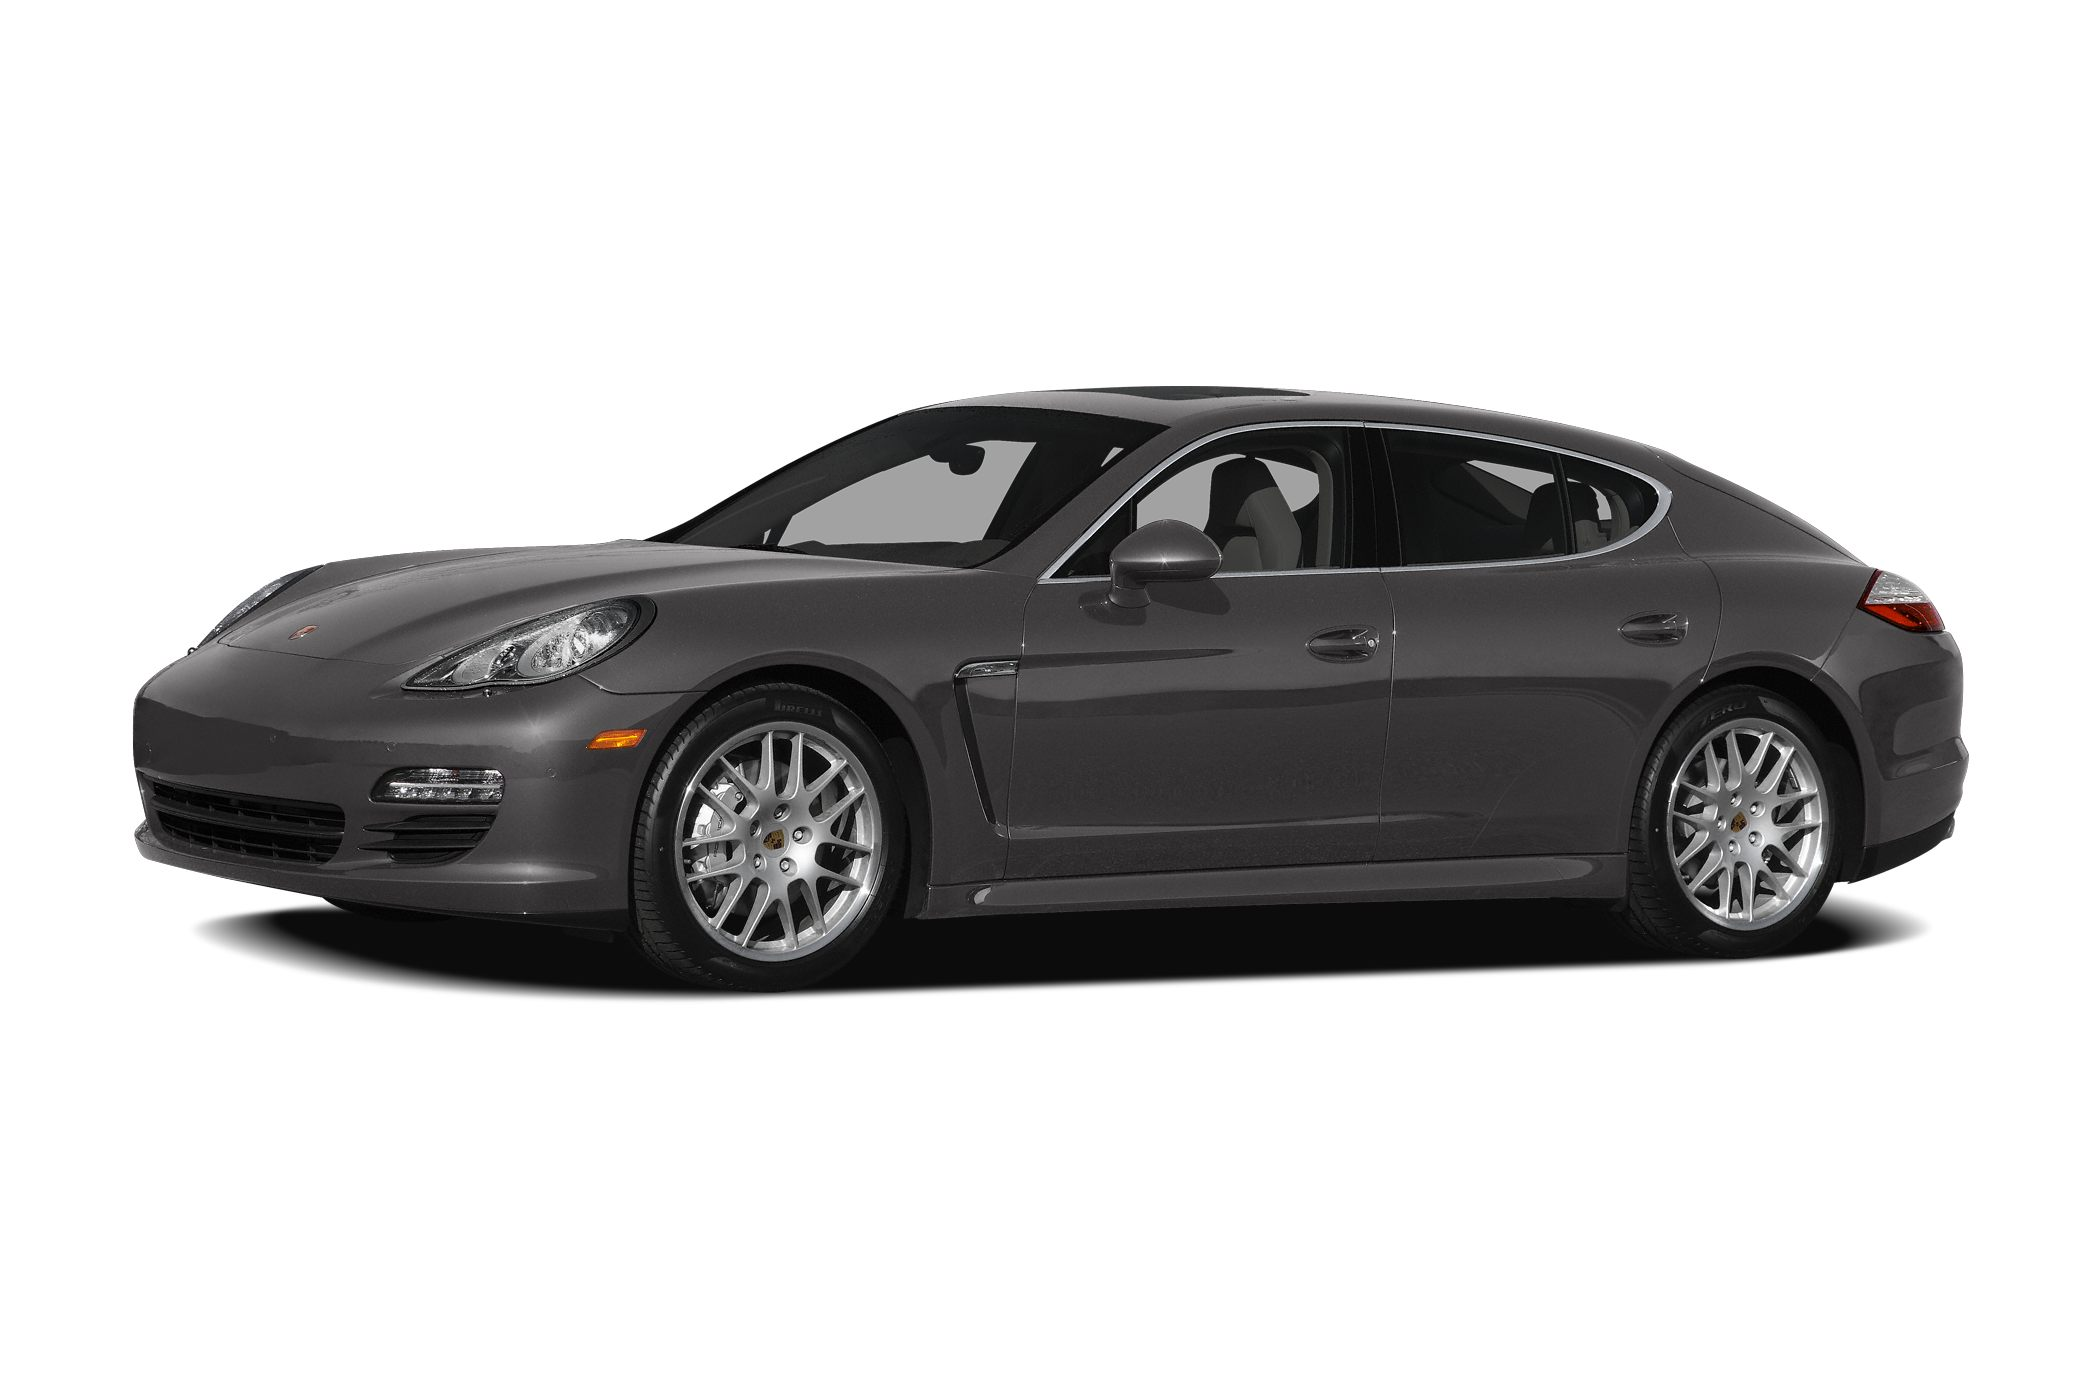 2012 Porsche Panamera S Hatchback for sale in Easley for $69,989 with 38,771 miles.